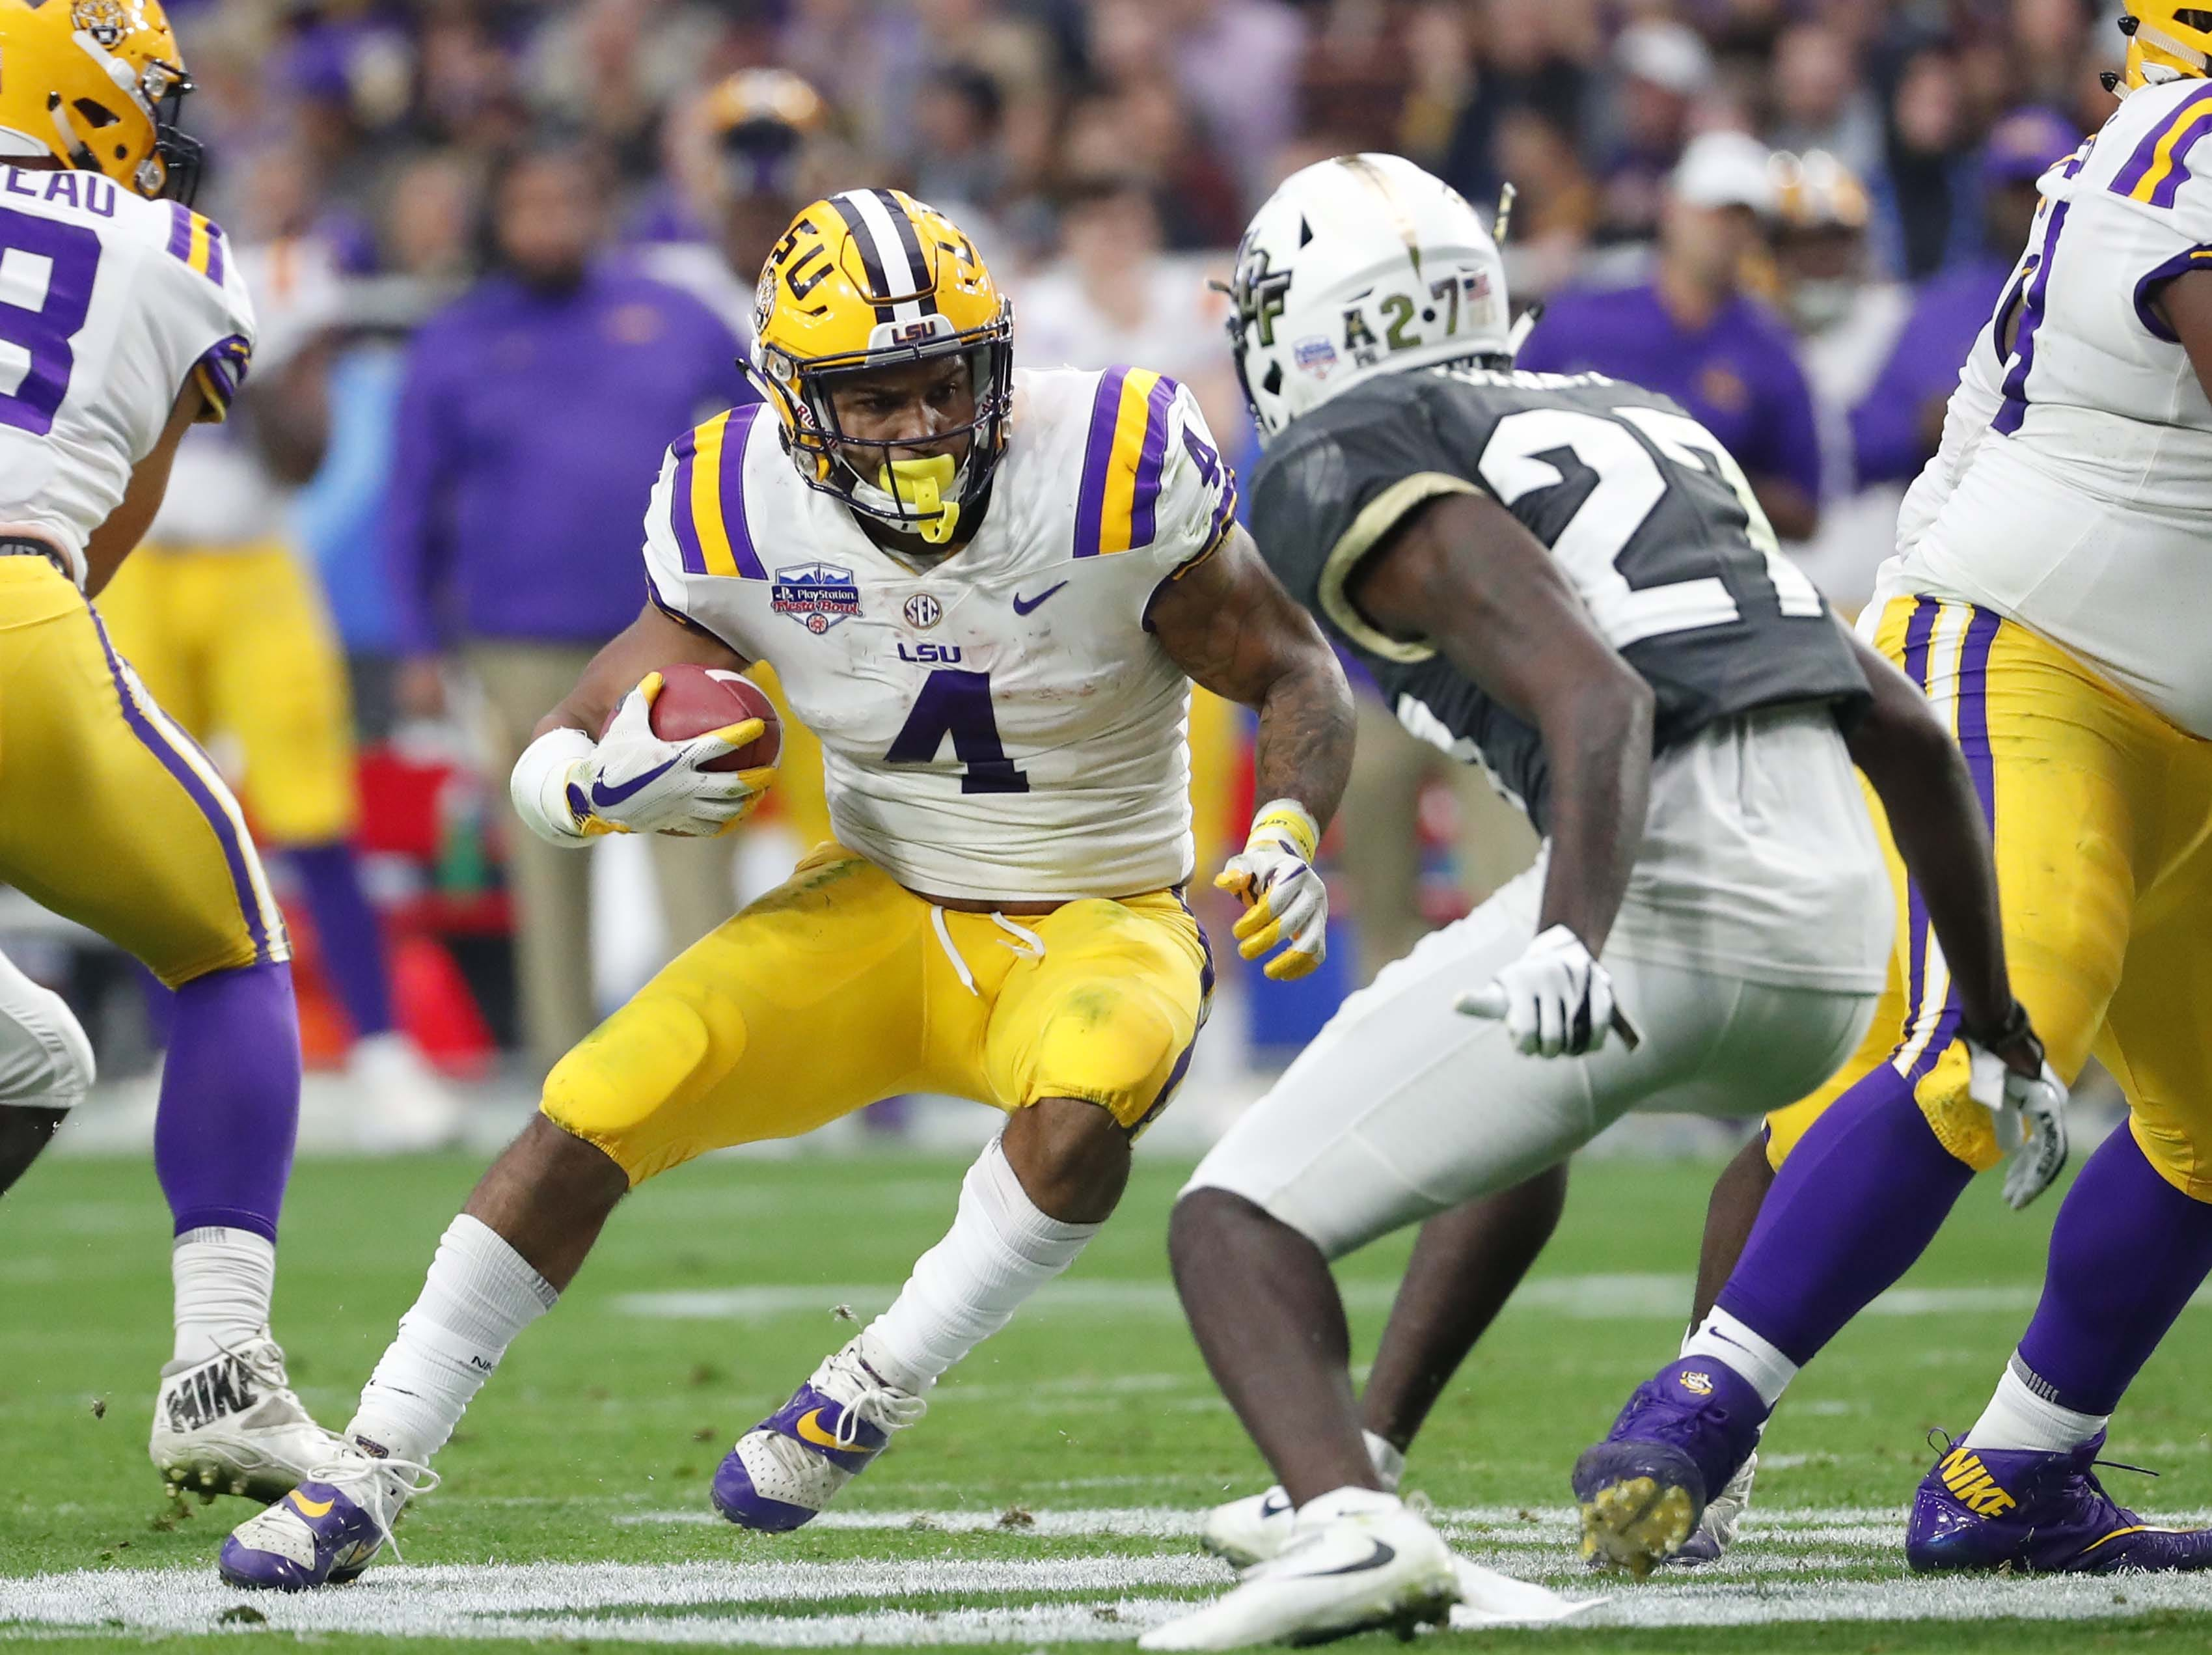 LSU running back Nick Brossette (4) runs against UCF defensive back Richie Grant (27) during the Fiesta Bowl in Glendale January 1, 2019.